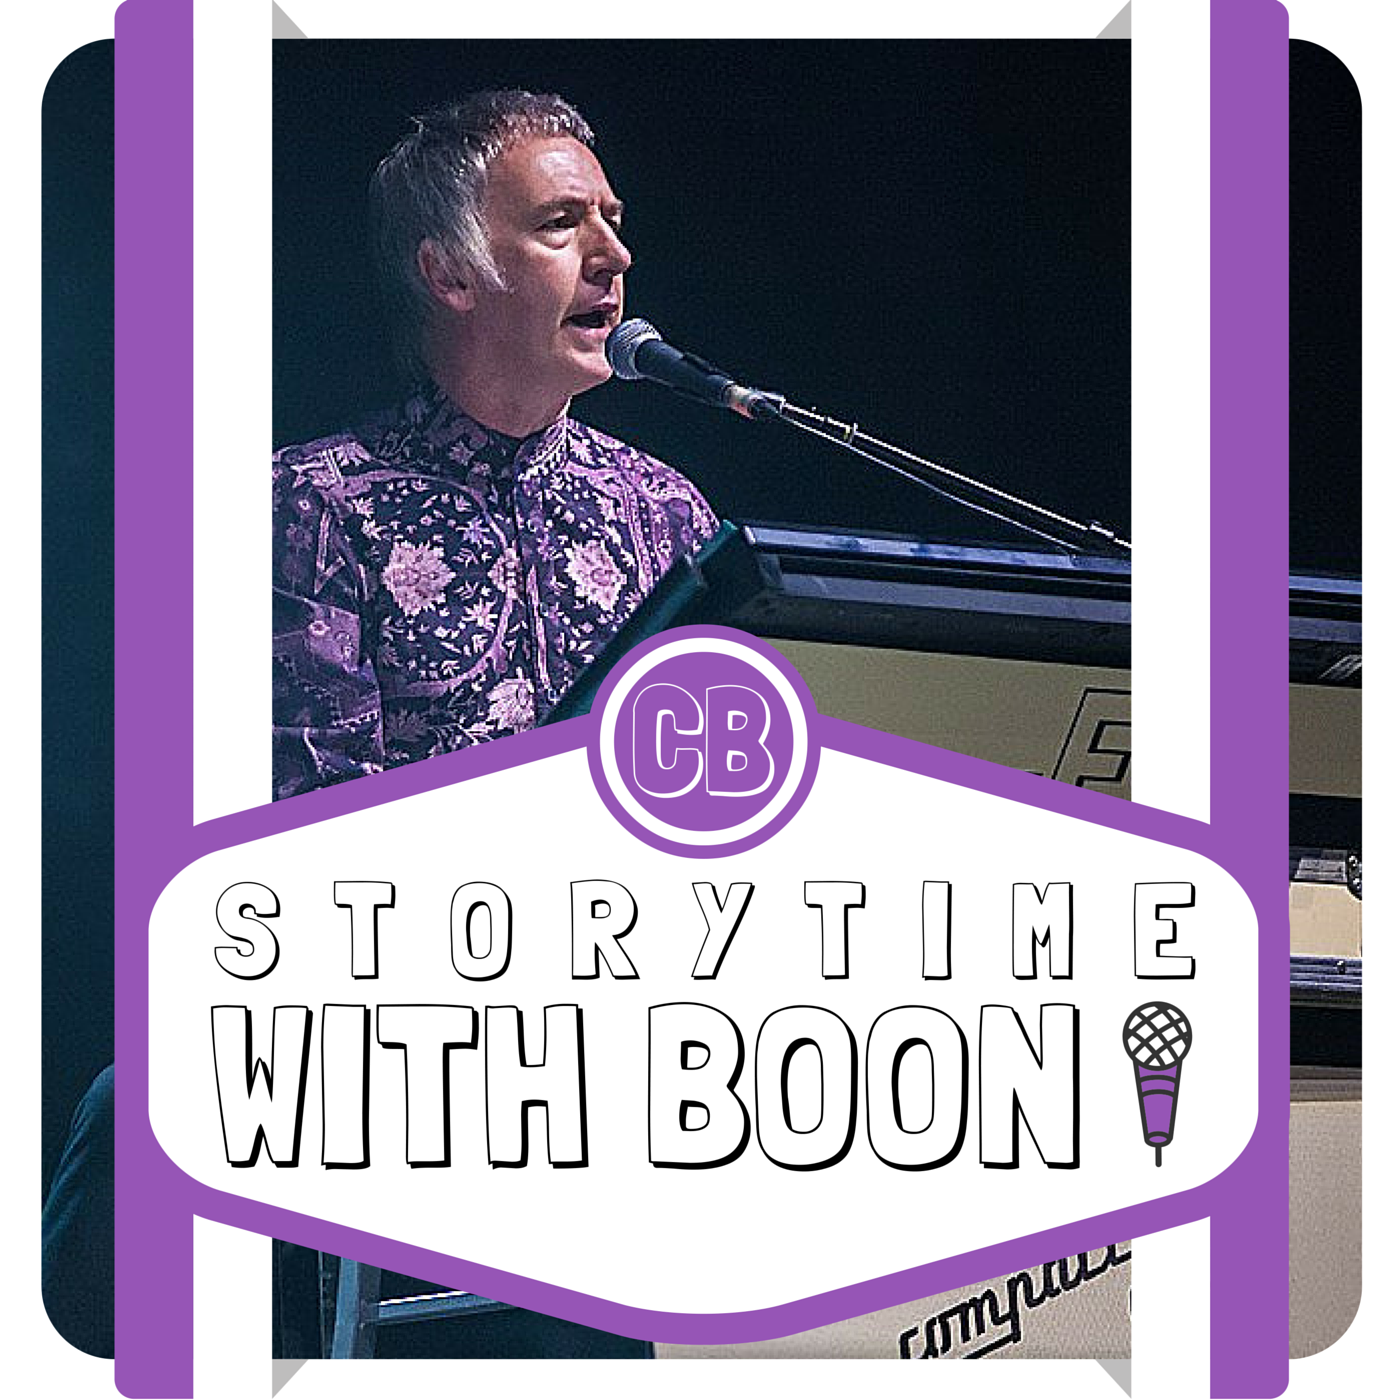 <![CDATA[Storytime with Boon]]>